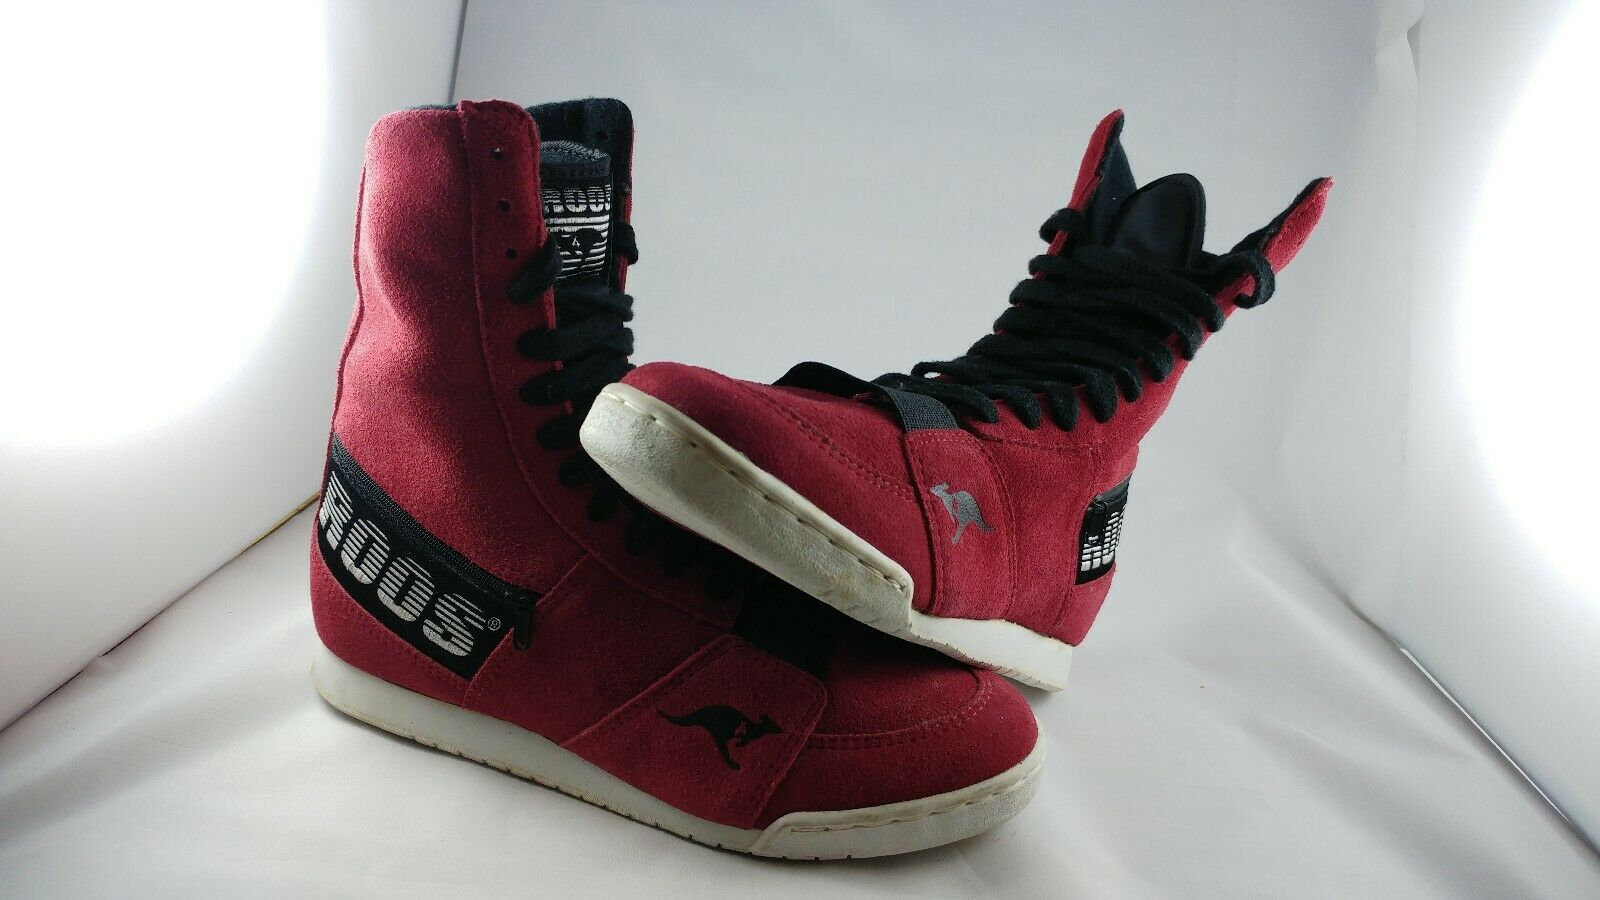 Retro sports boots. Roos in Red Leather suede . New.